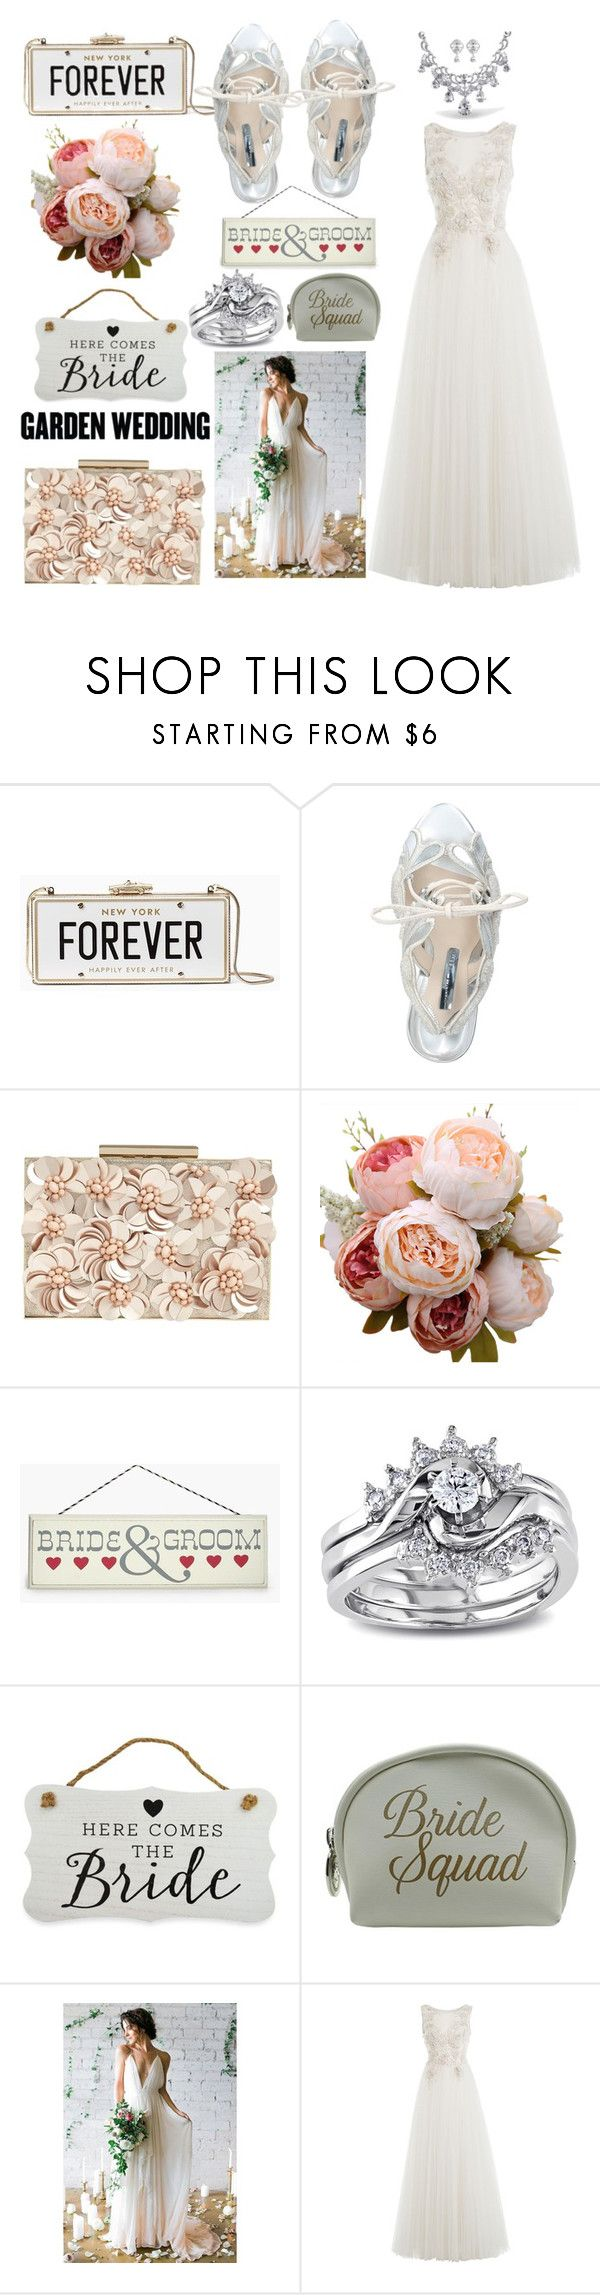 """here comes the 👰 bride"" by mia-p-o-v ❤ liked on Polyvore featuring Kate Spade, Sophia Webster, Phase Eight, Boohoo, Miadora, New View, Danielle Creations and Alberta Ferretti"